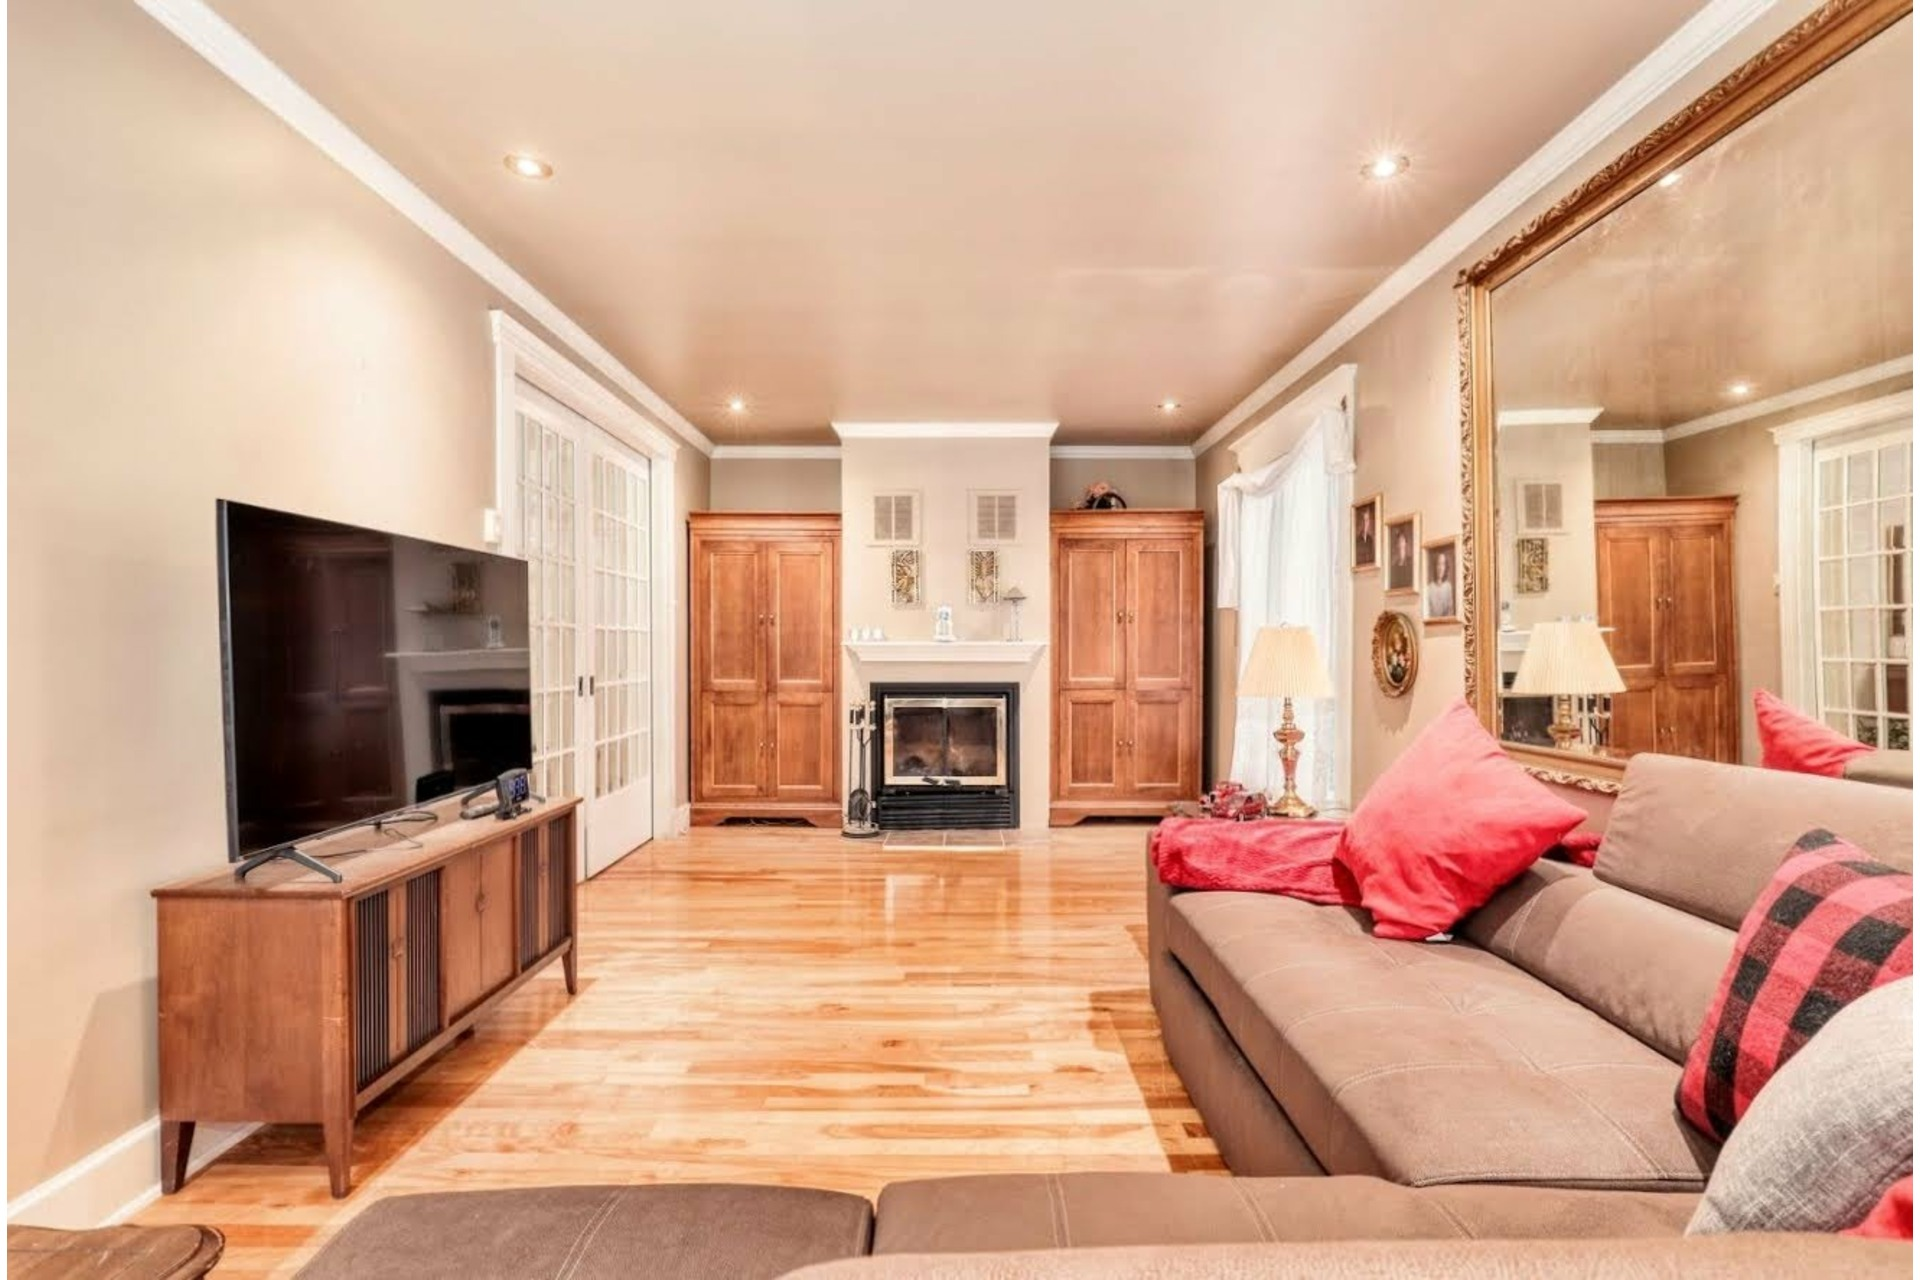 image 2 - House For sale Joliette - 10 rooms